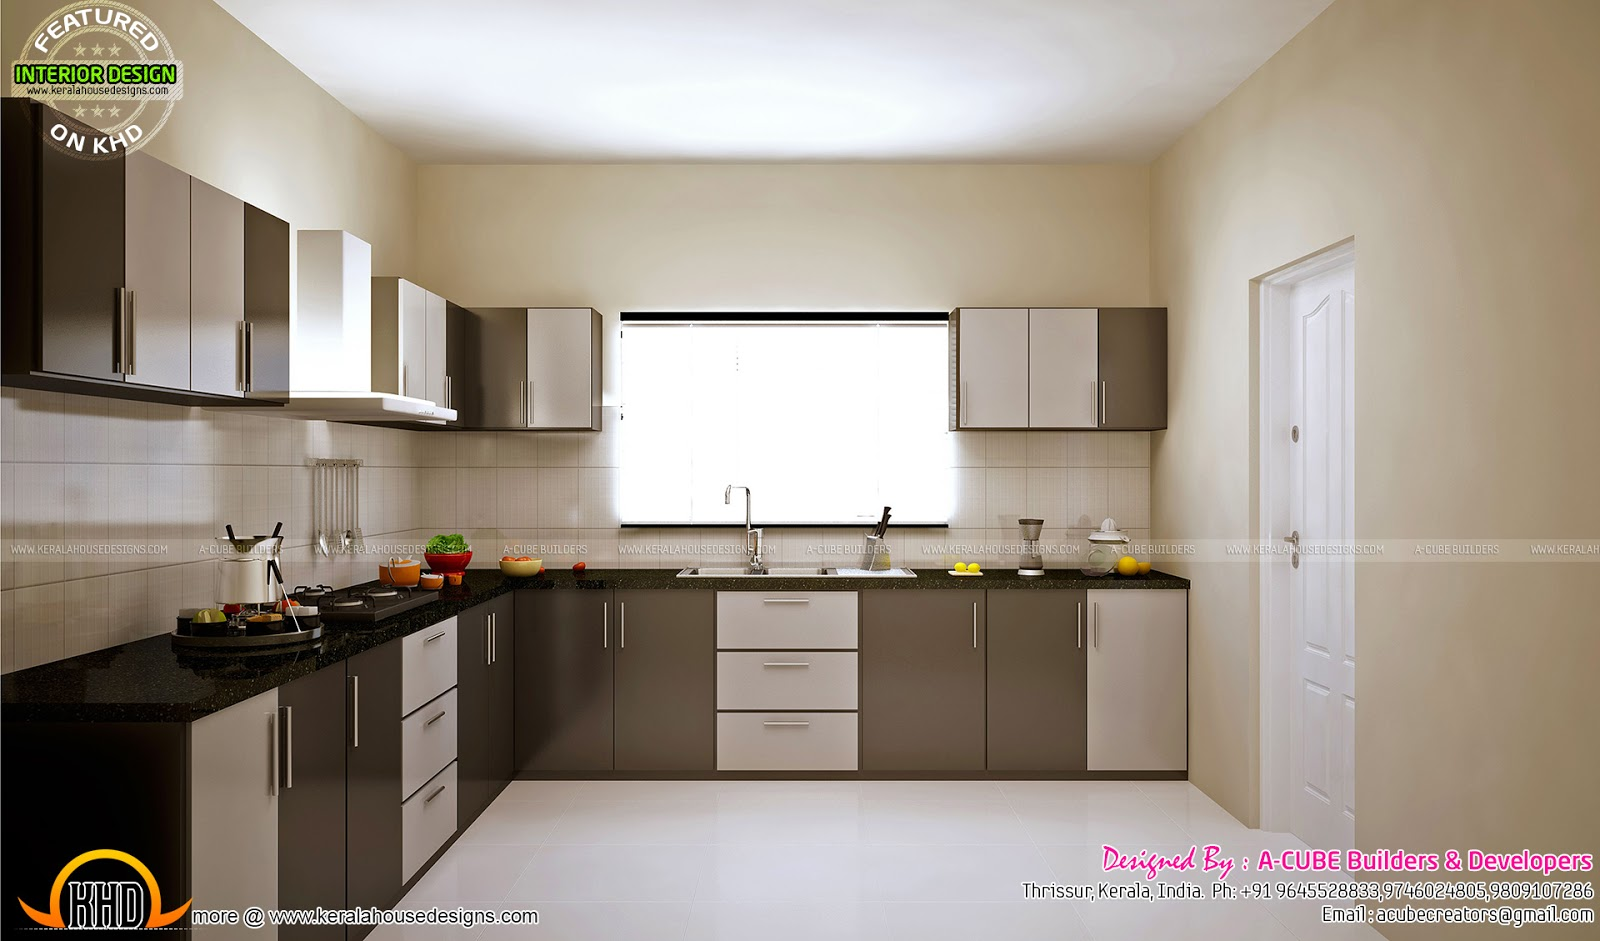 Kitchen and master bedroom designs kerala home design for Interior design ideas for small homes in kerala